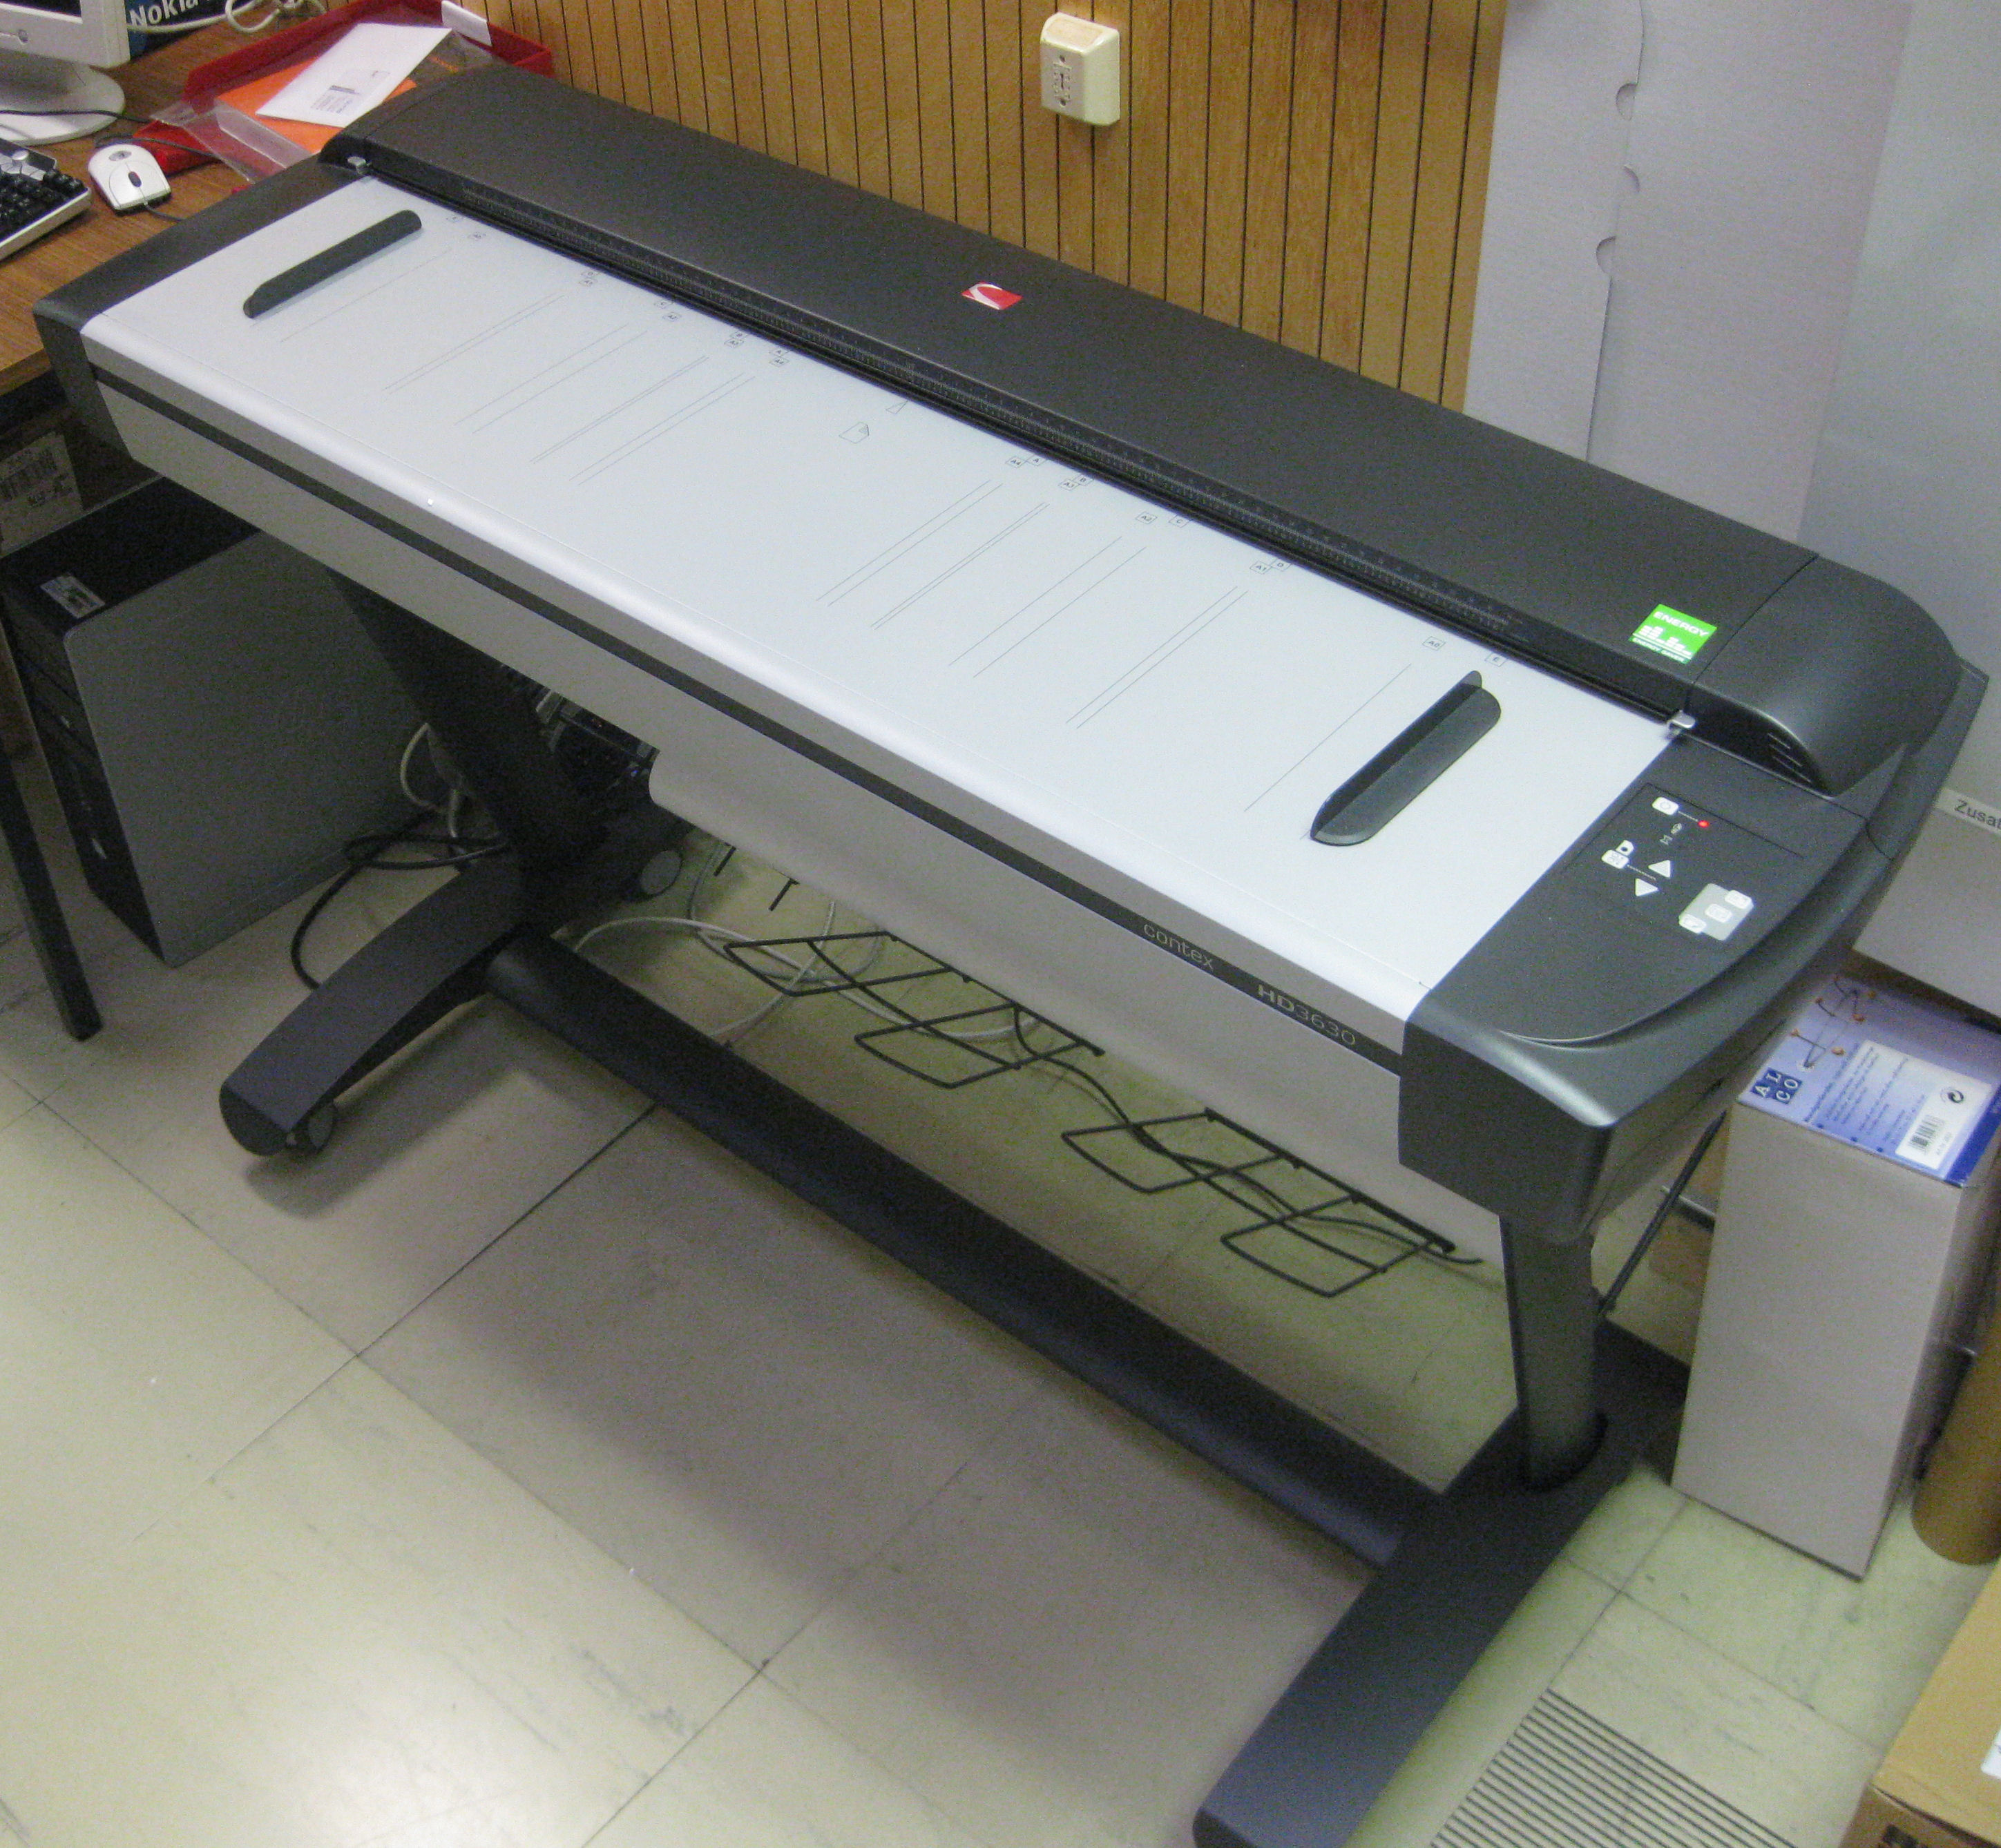 scanner contex hd 3630